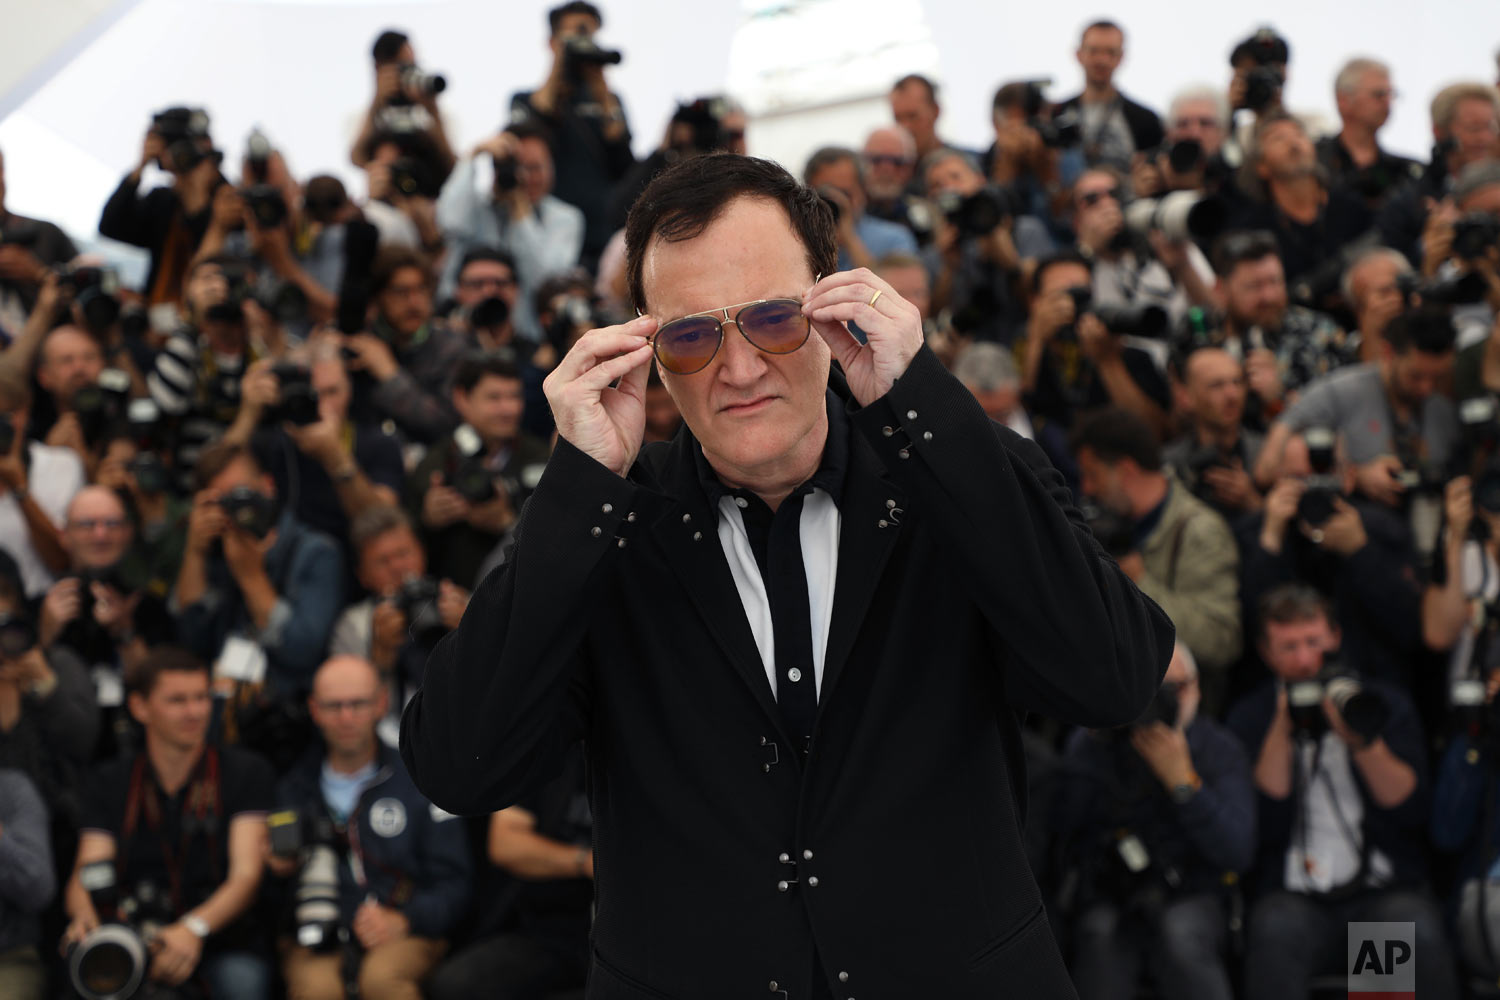 Director Quentin Tarantino poses for photographers at the photo call for the film 'Once Upon a Time in Hollywood' at the 72nd international film festival, Cannes, southern France, May 22, 2019. (Photo by Vianney Le Caer/Invision/AP)